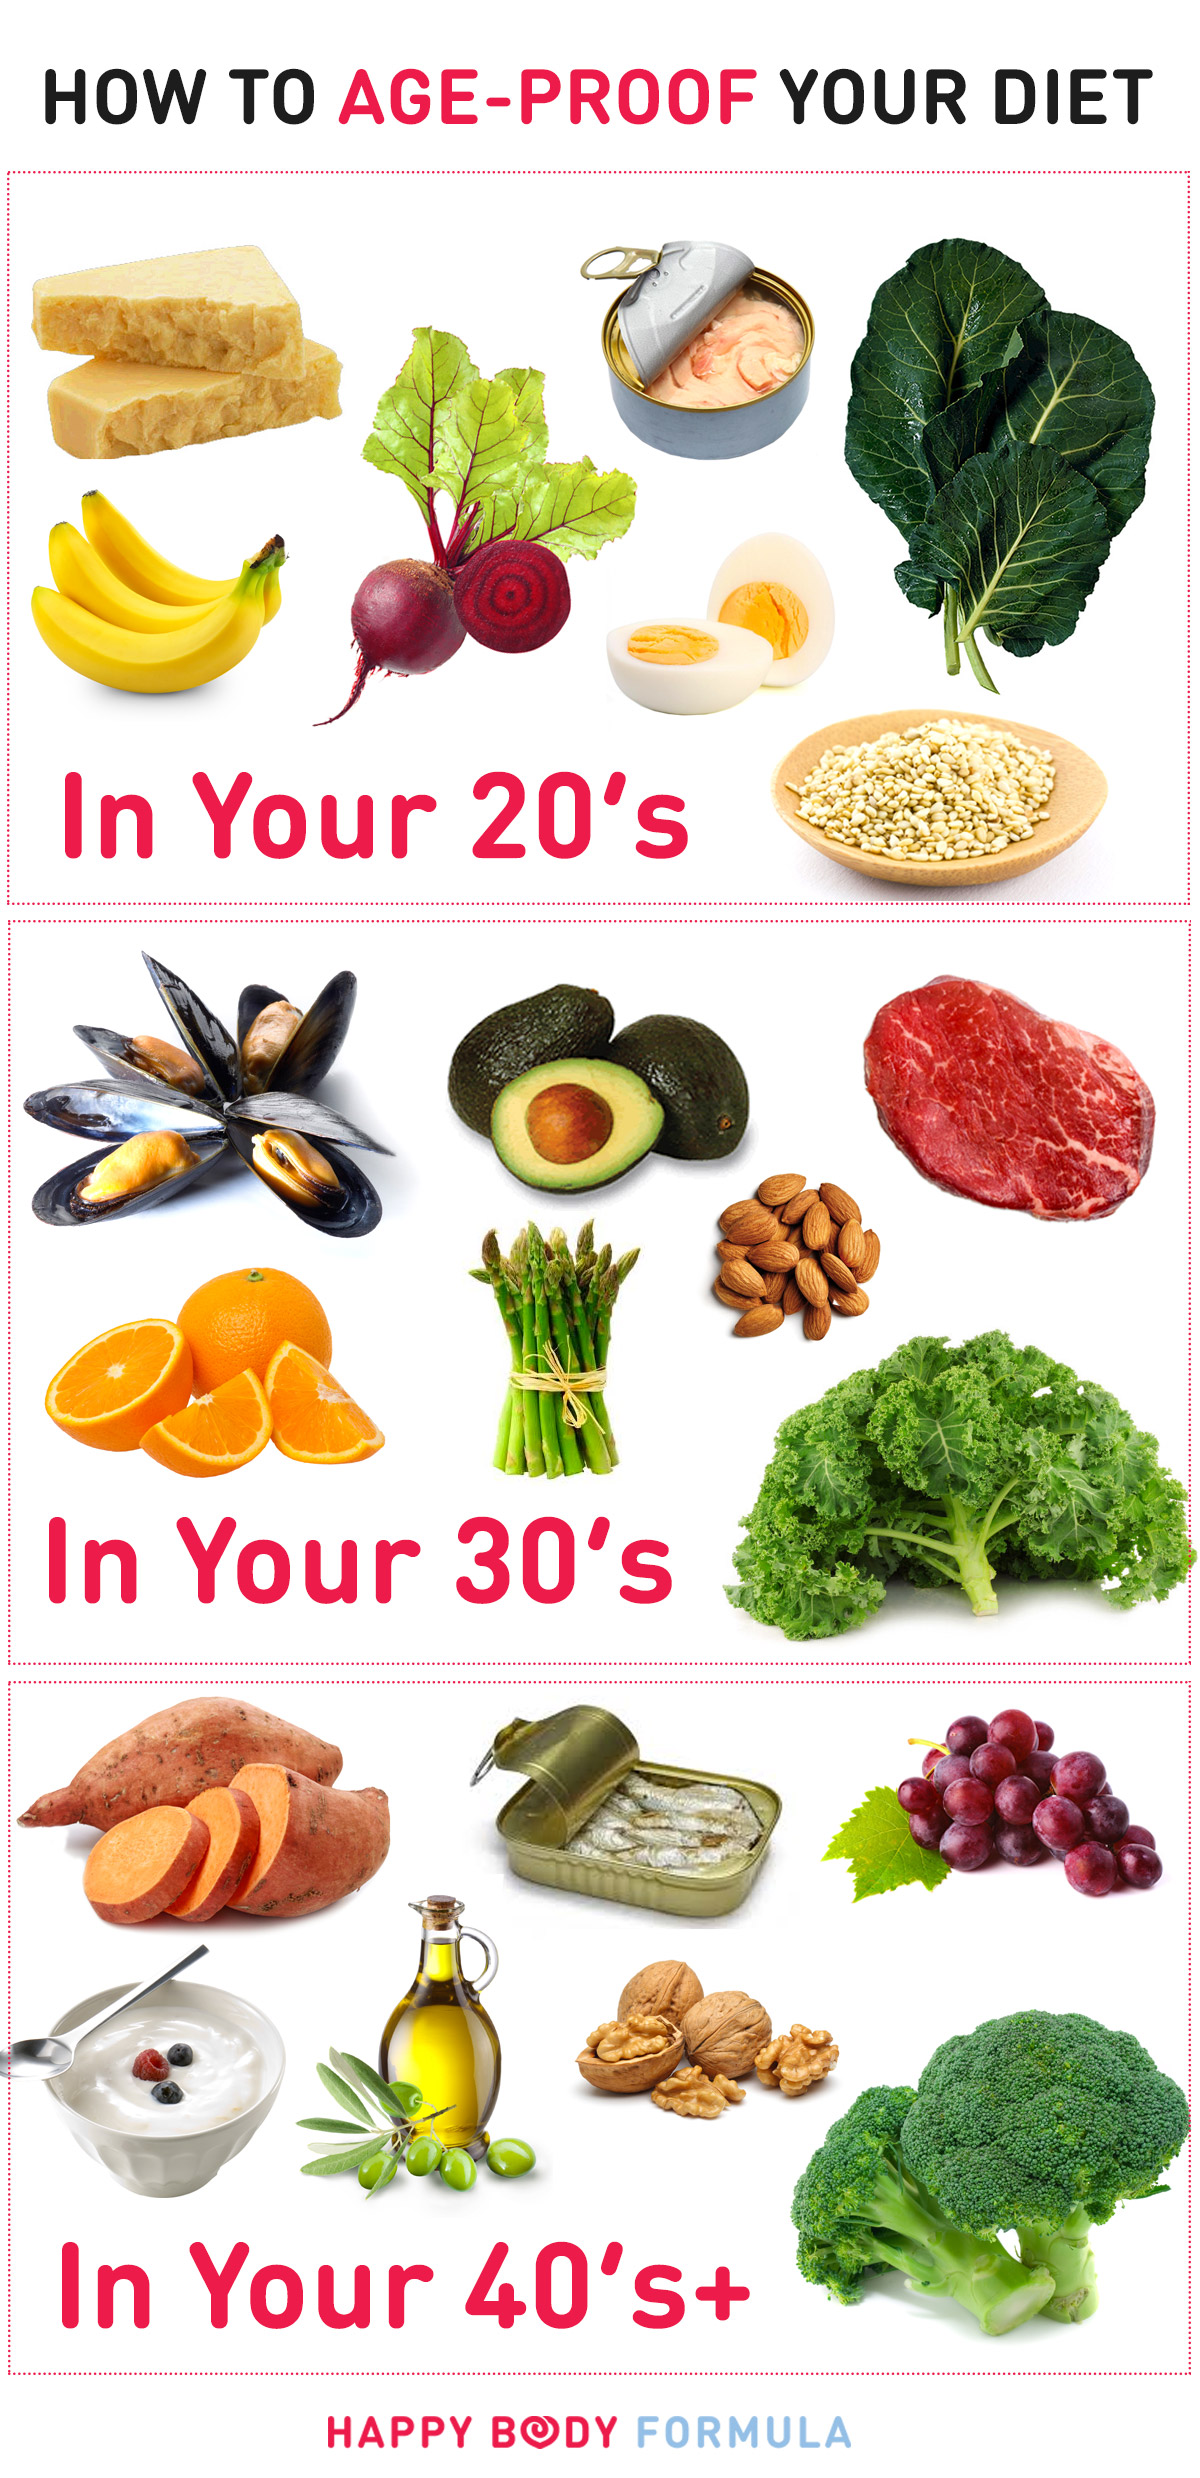 How to Age-Proof Your Diet: Best Foods to Eat for Every Age Group | Happybodyformula.com